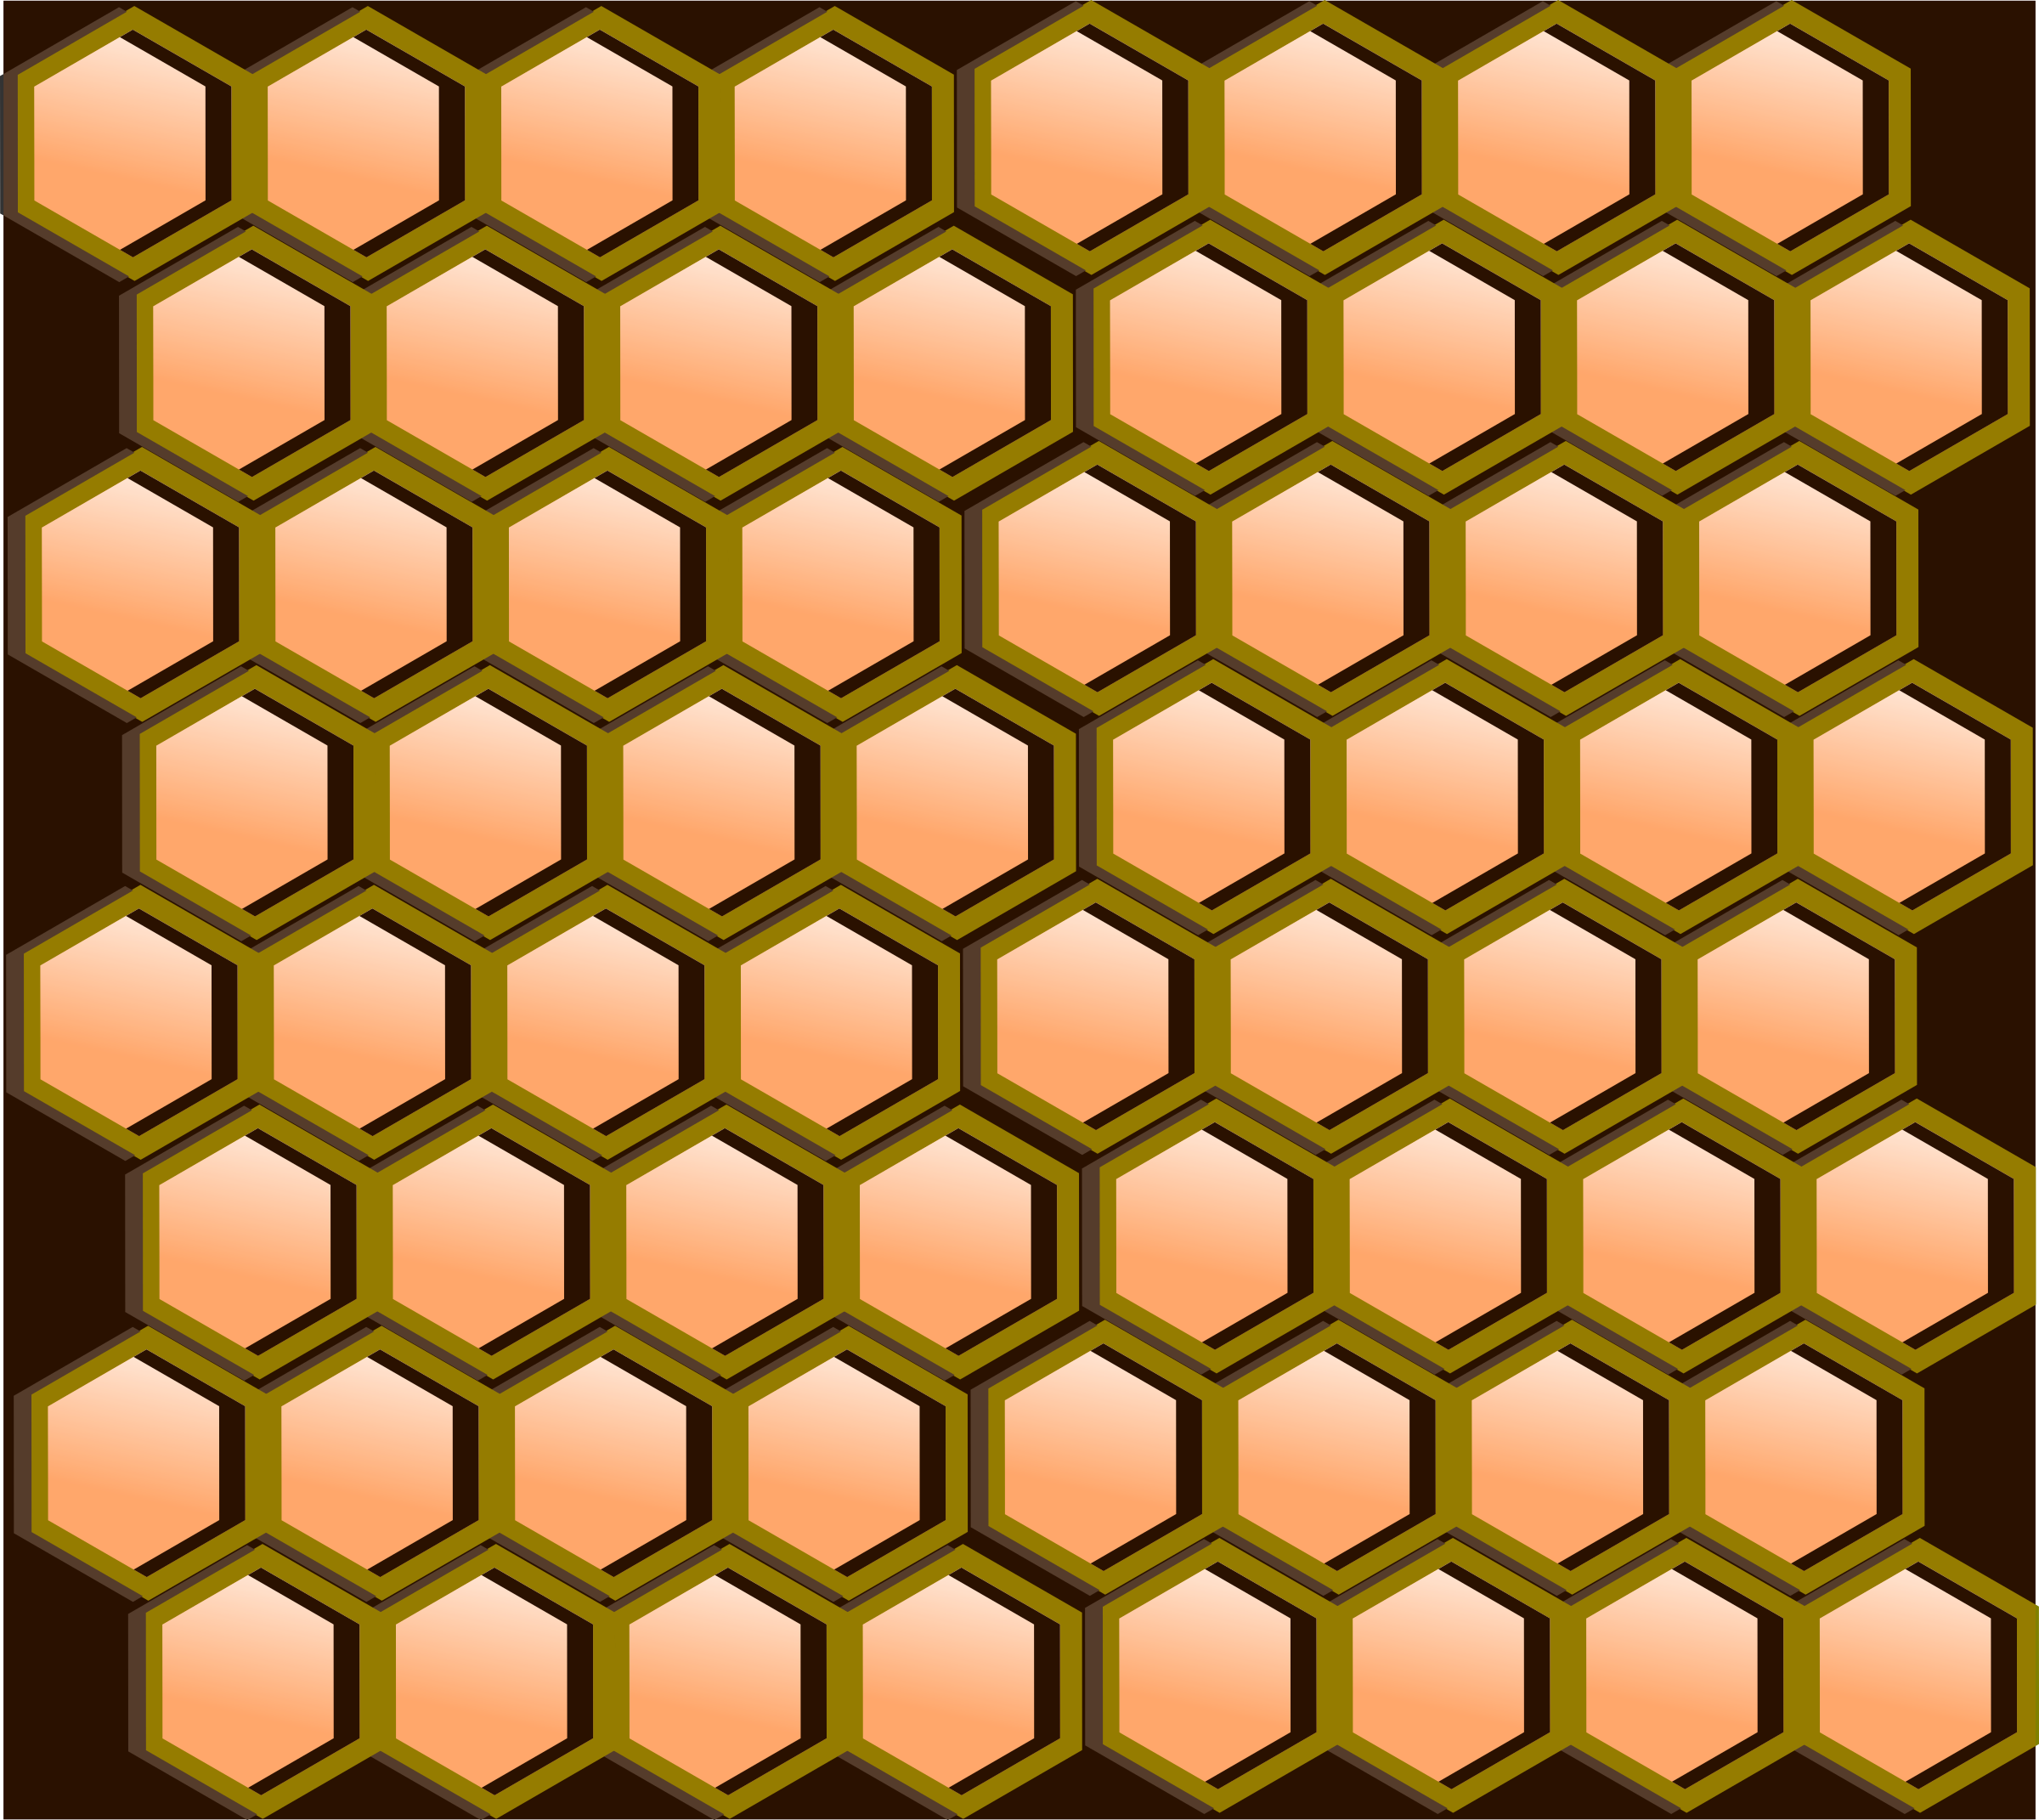 Honeycomb Cells by gsagri04